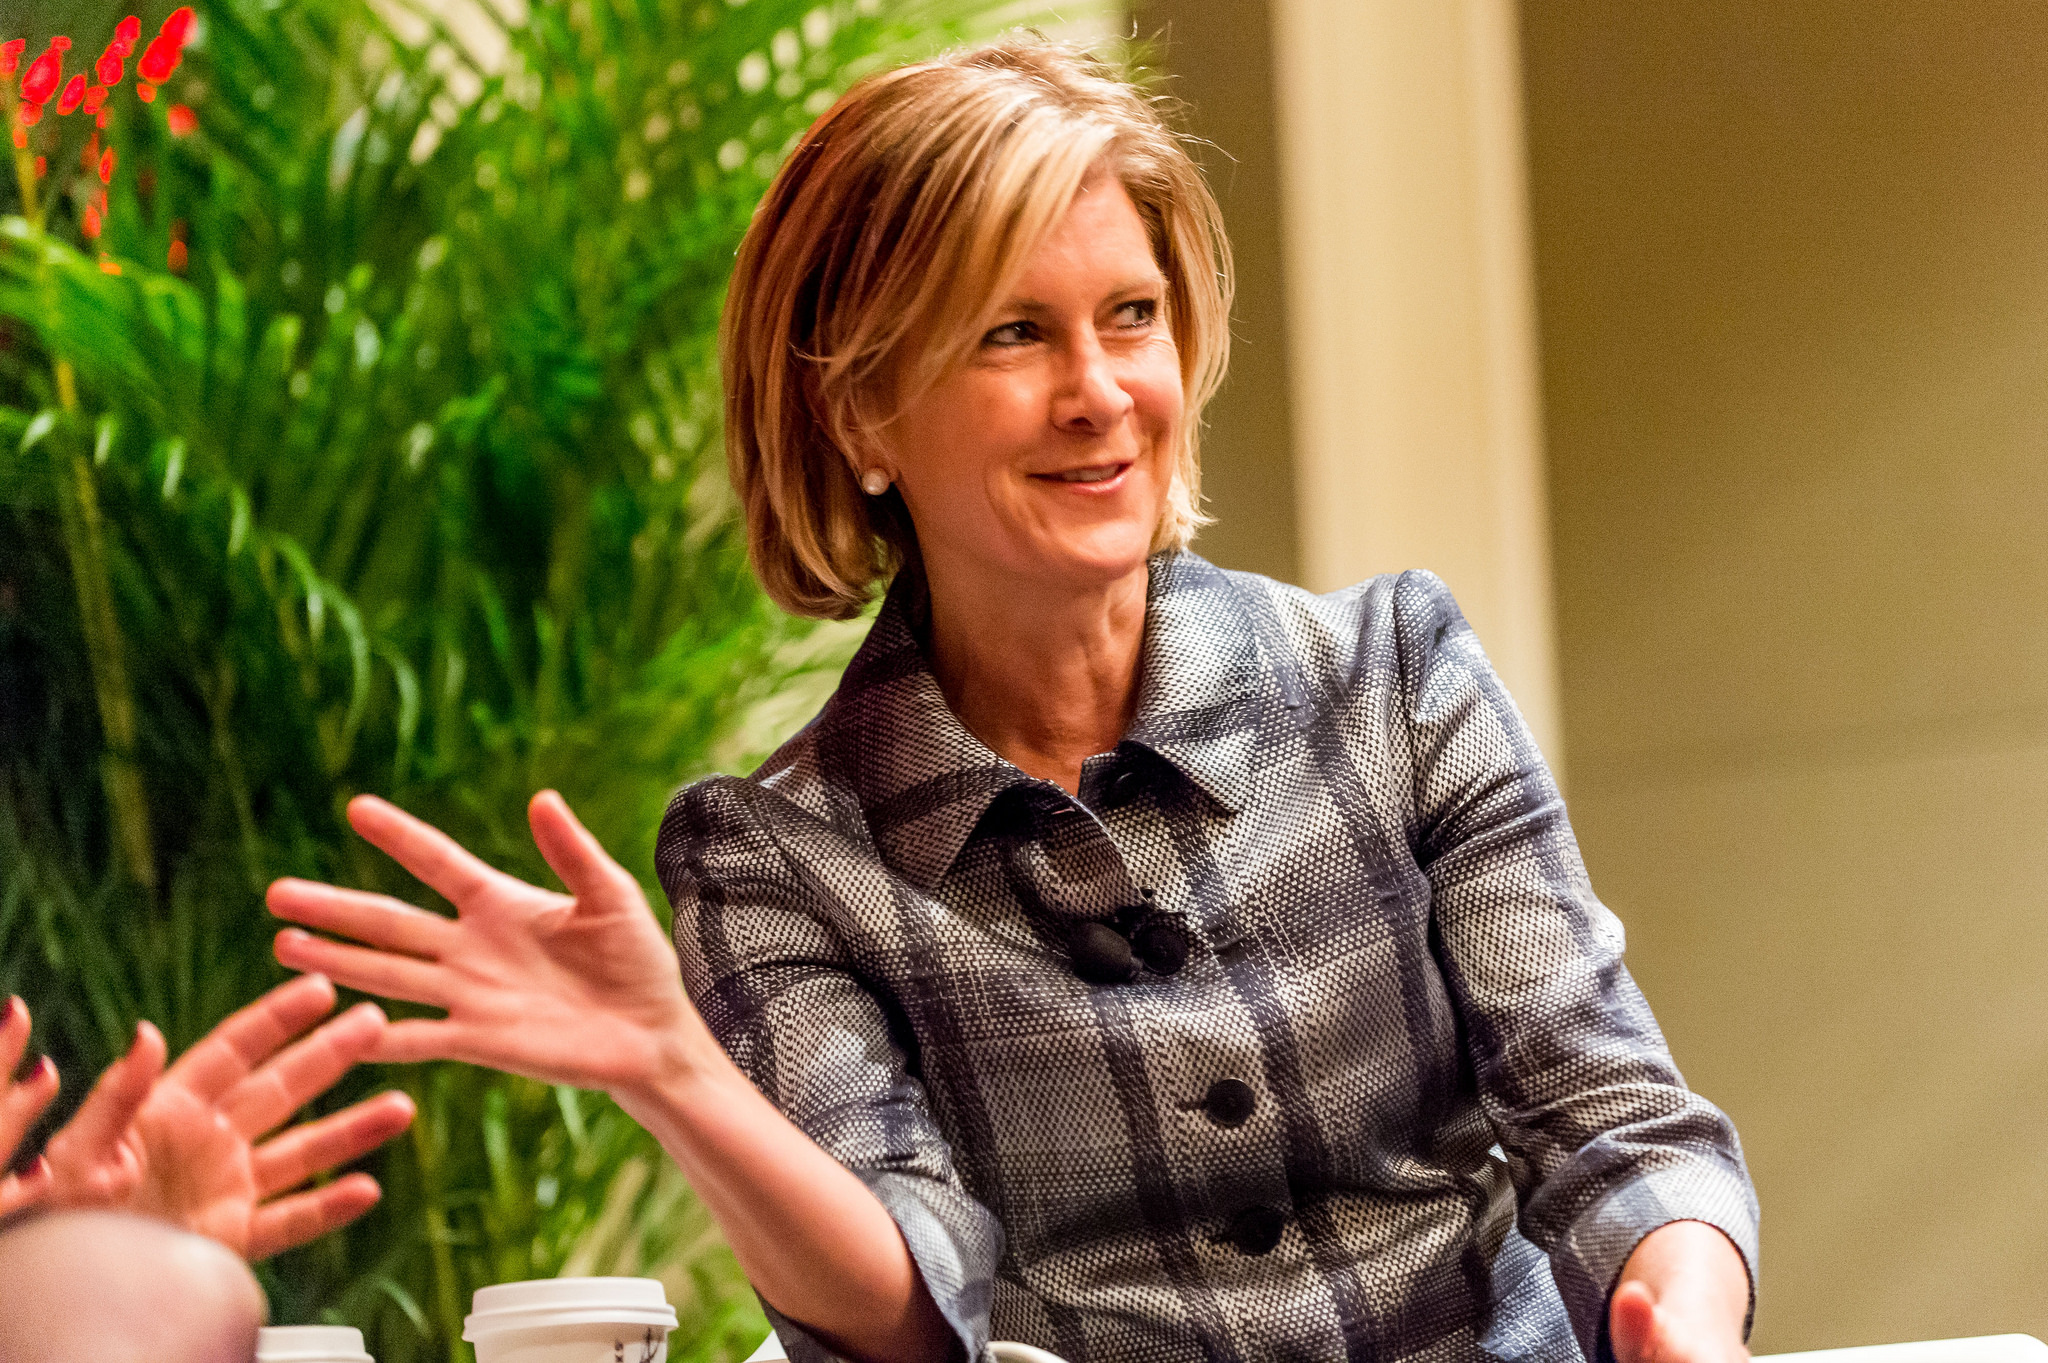 October 12th, 2015. Washington, D.C.: Mary Erdoes, CEO, J.P. Morgan Asset Management at Fortune's  Most Powerful Women 2015 summit